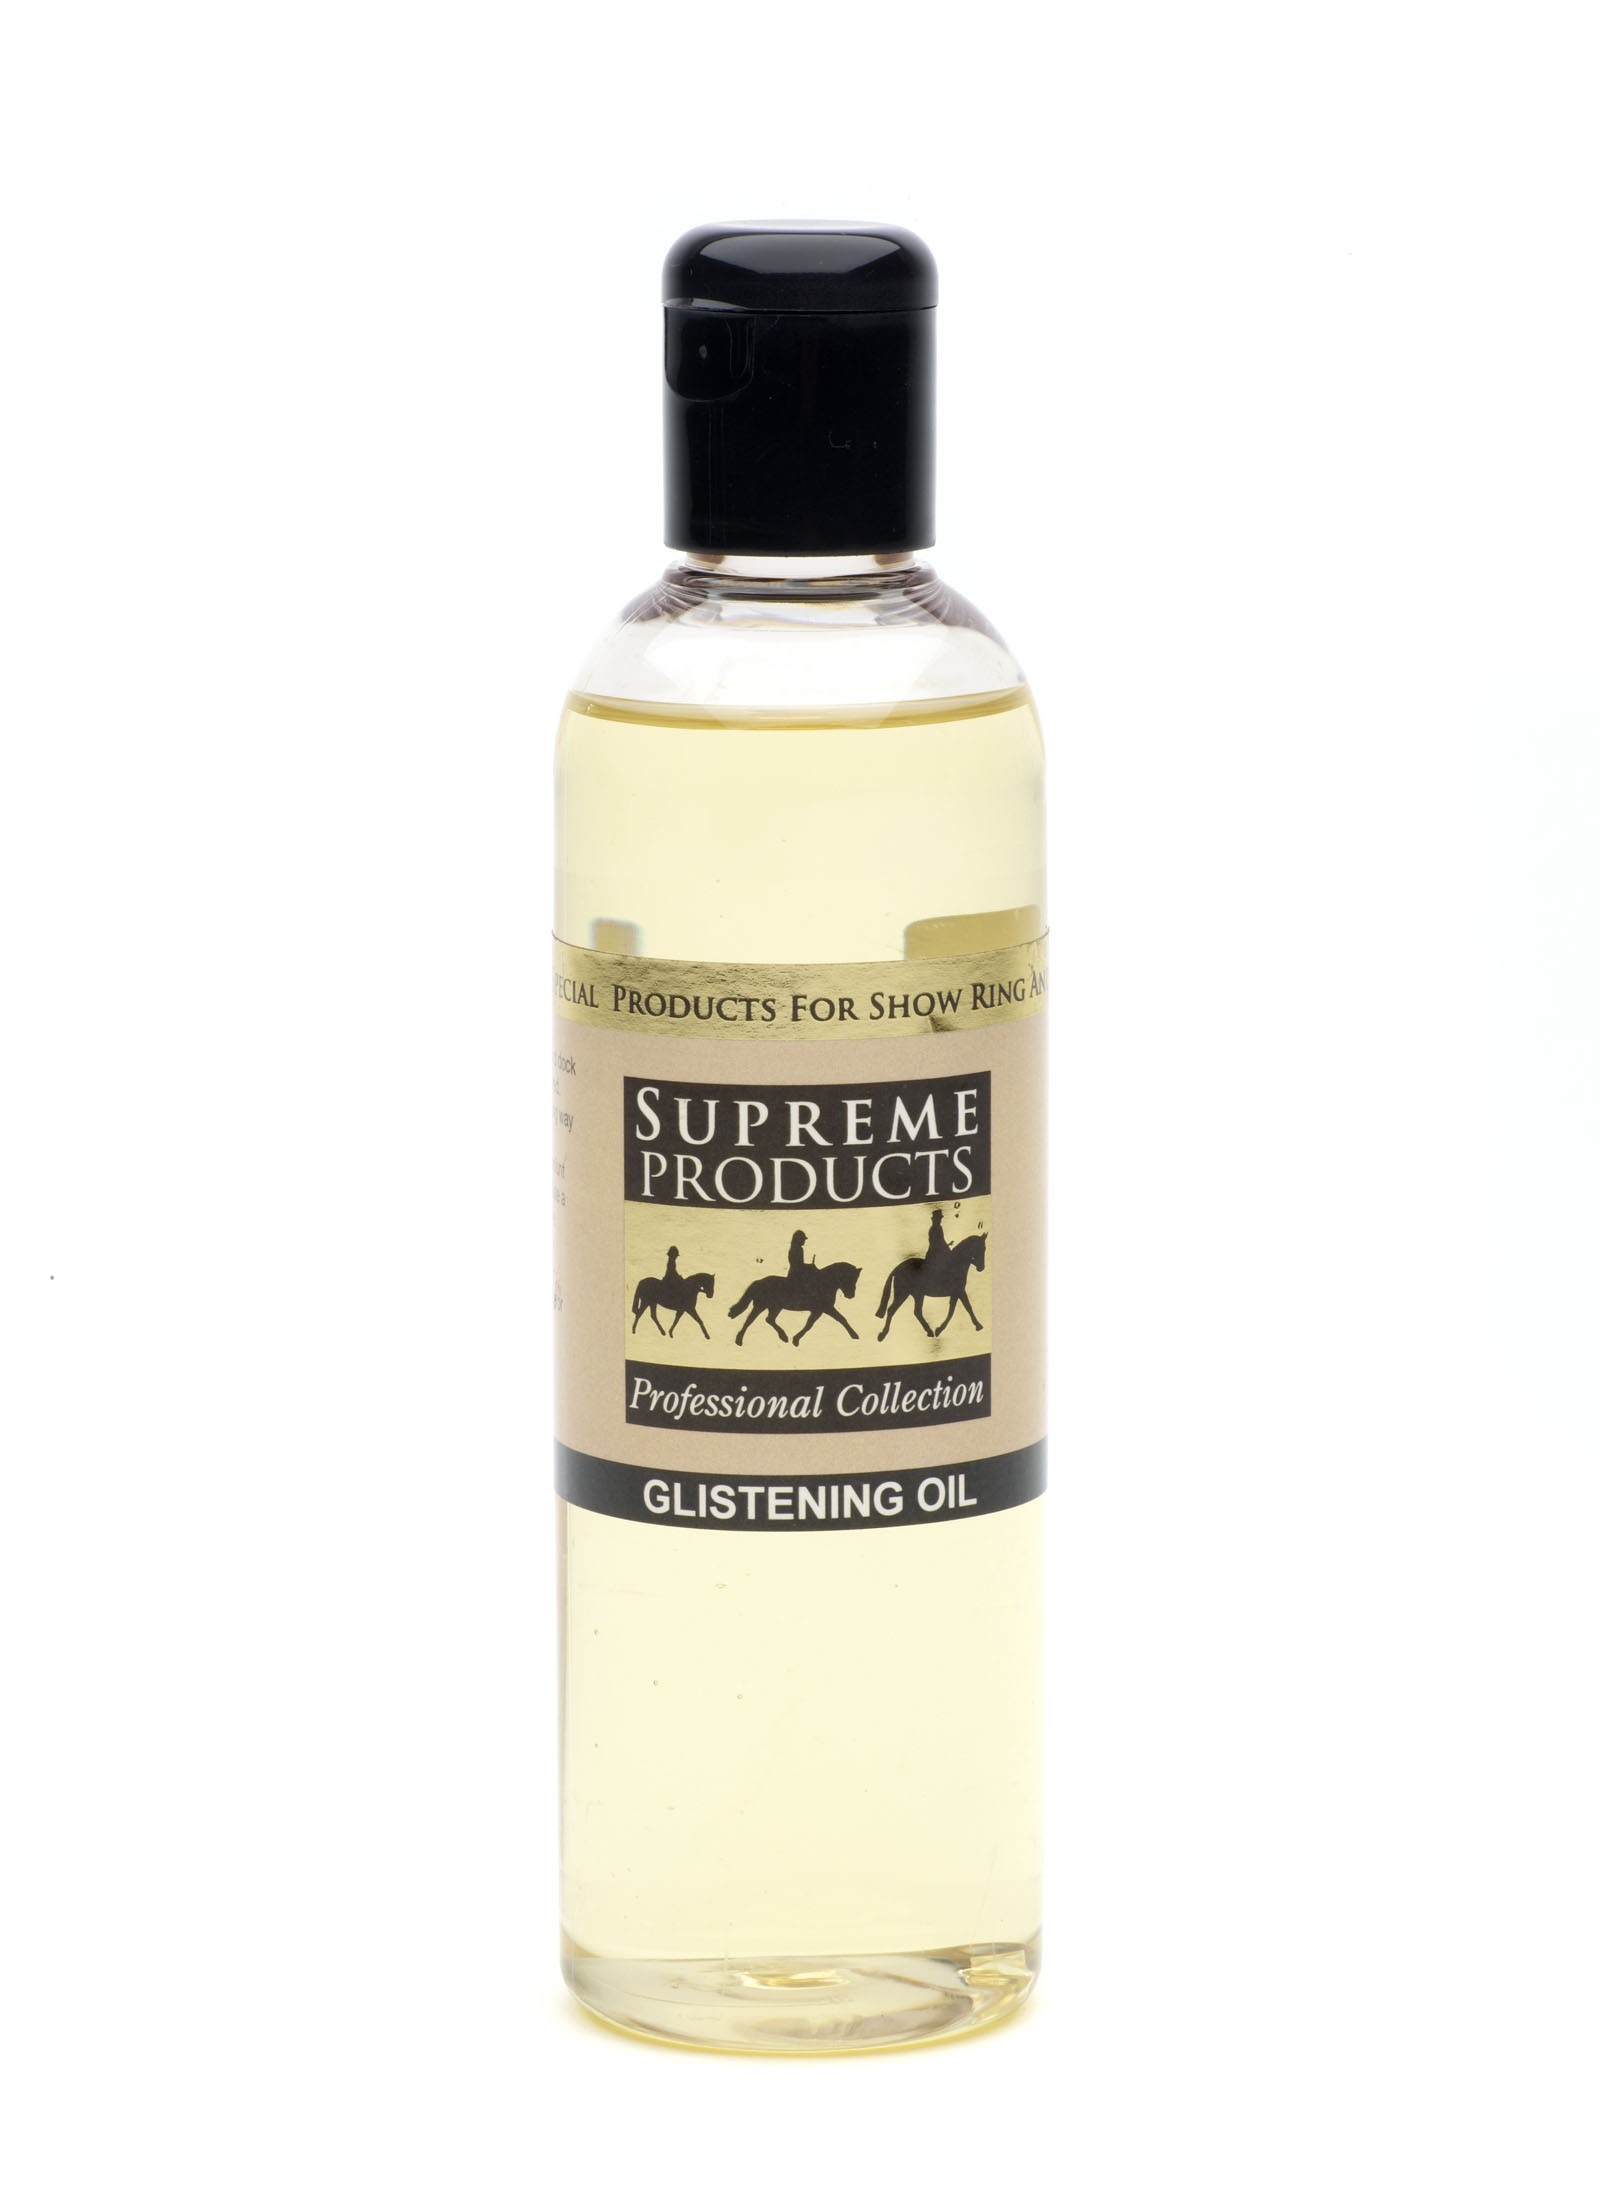 Supreme Products Glistening Oil  - Thomas Irving's equestrian and accessories store  Supreme Products Glistening Oil